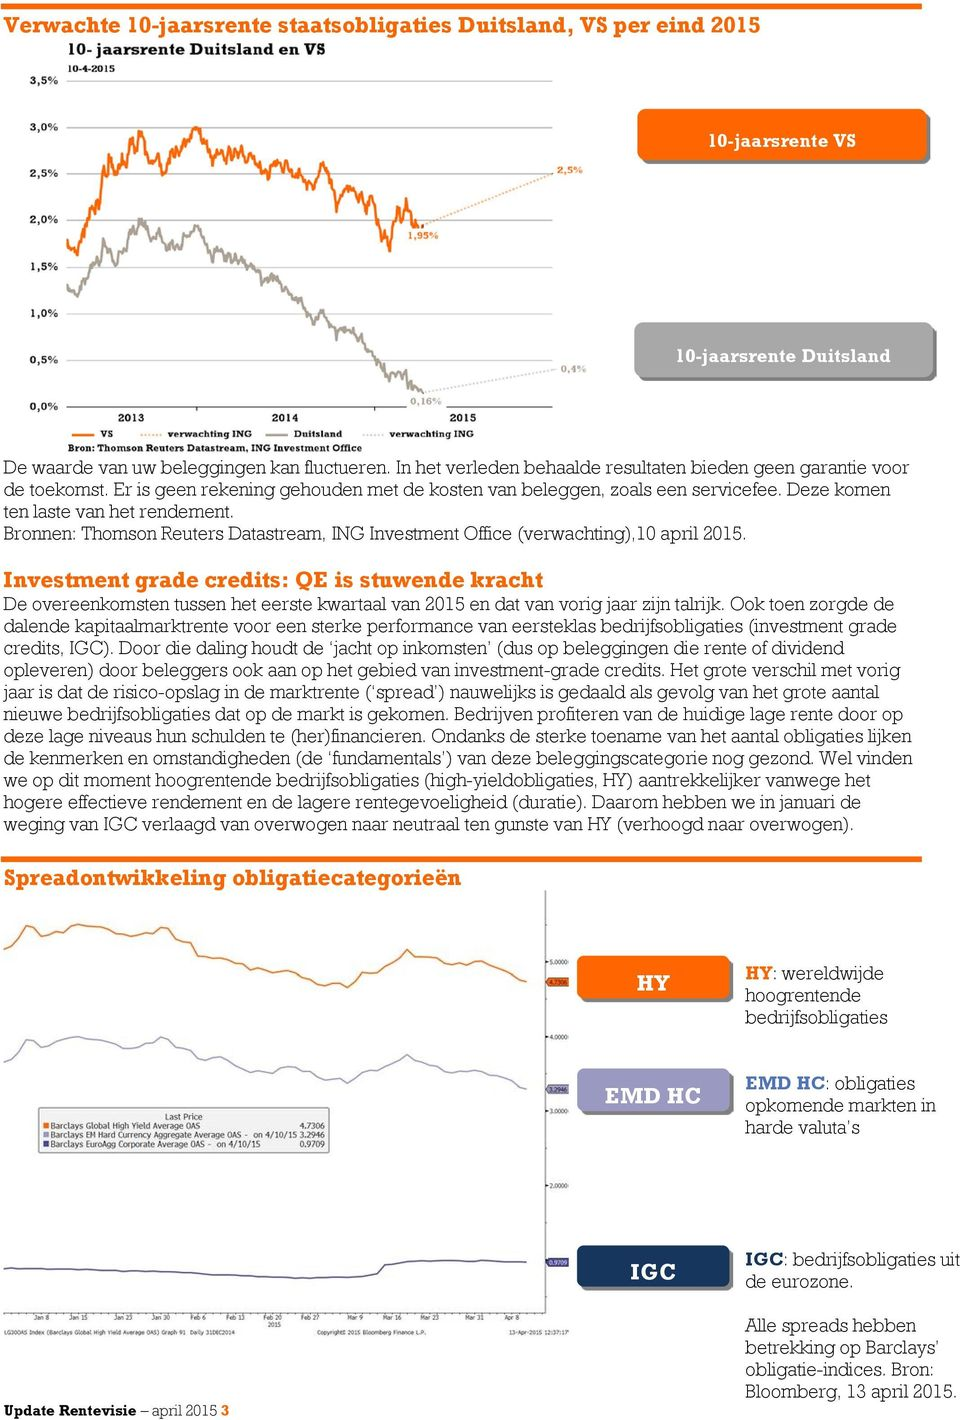 Bronnen: Thomson Reuters Datastream, ING Investment Office (verwachting),10 april 2015.